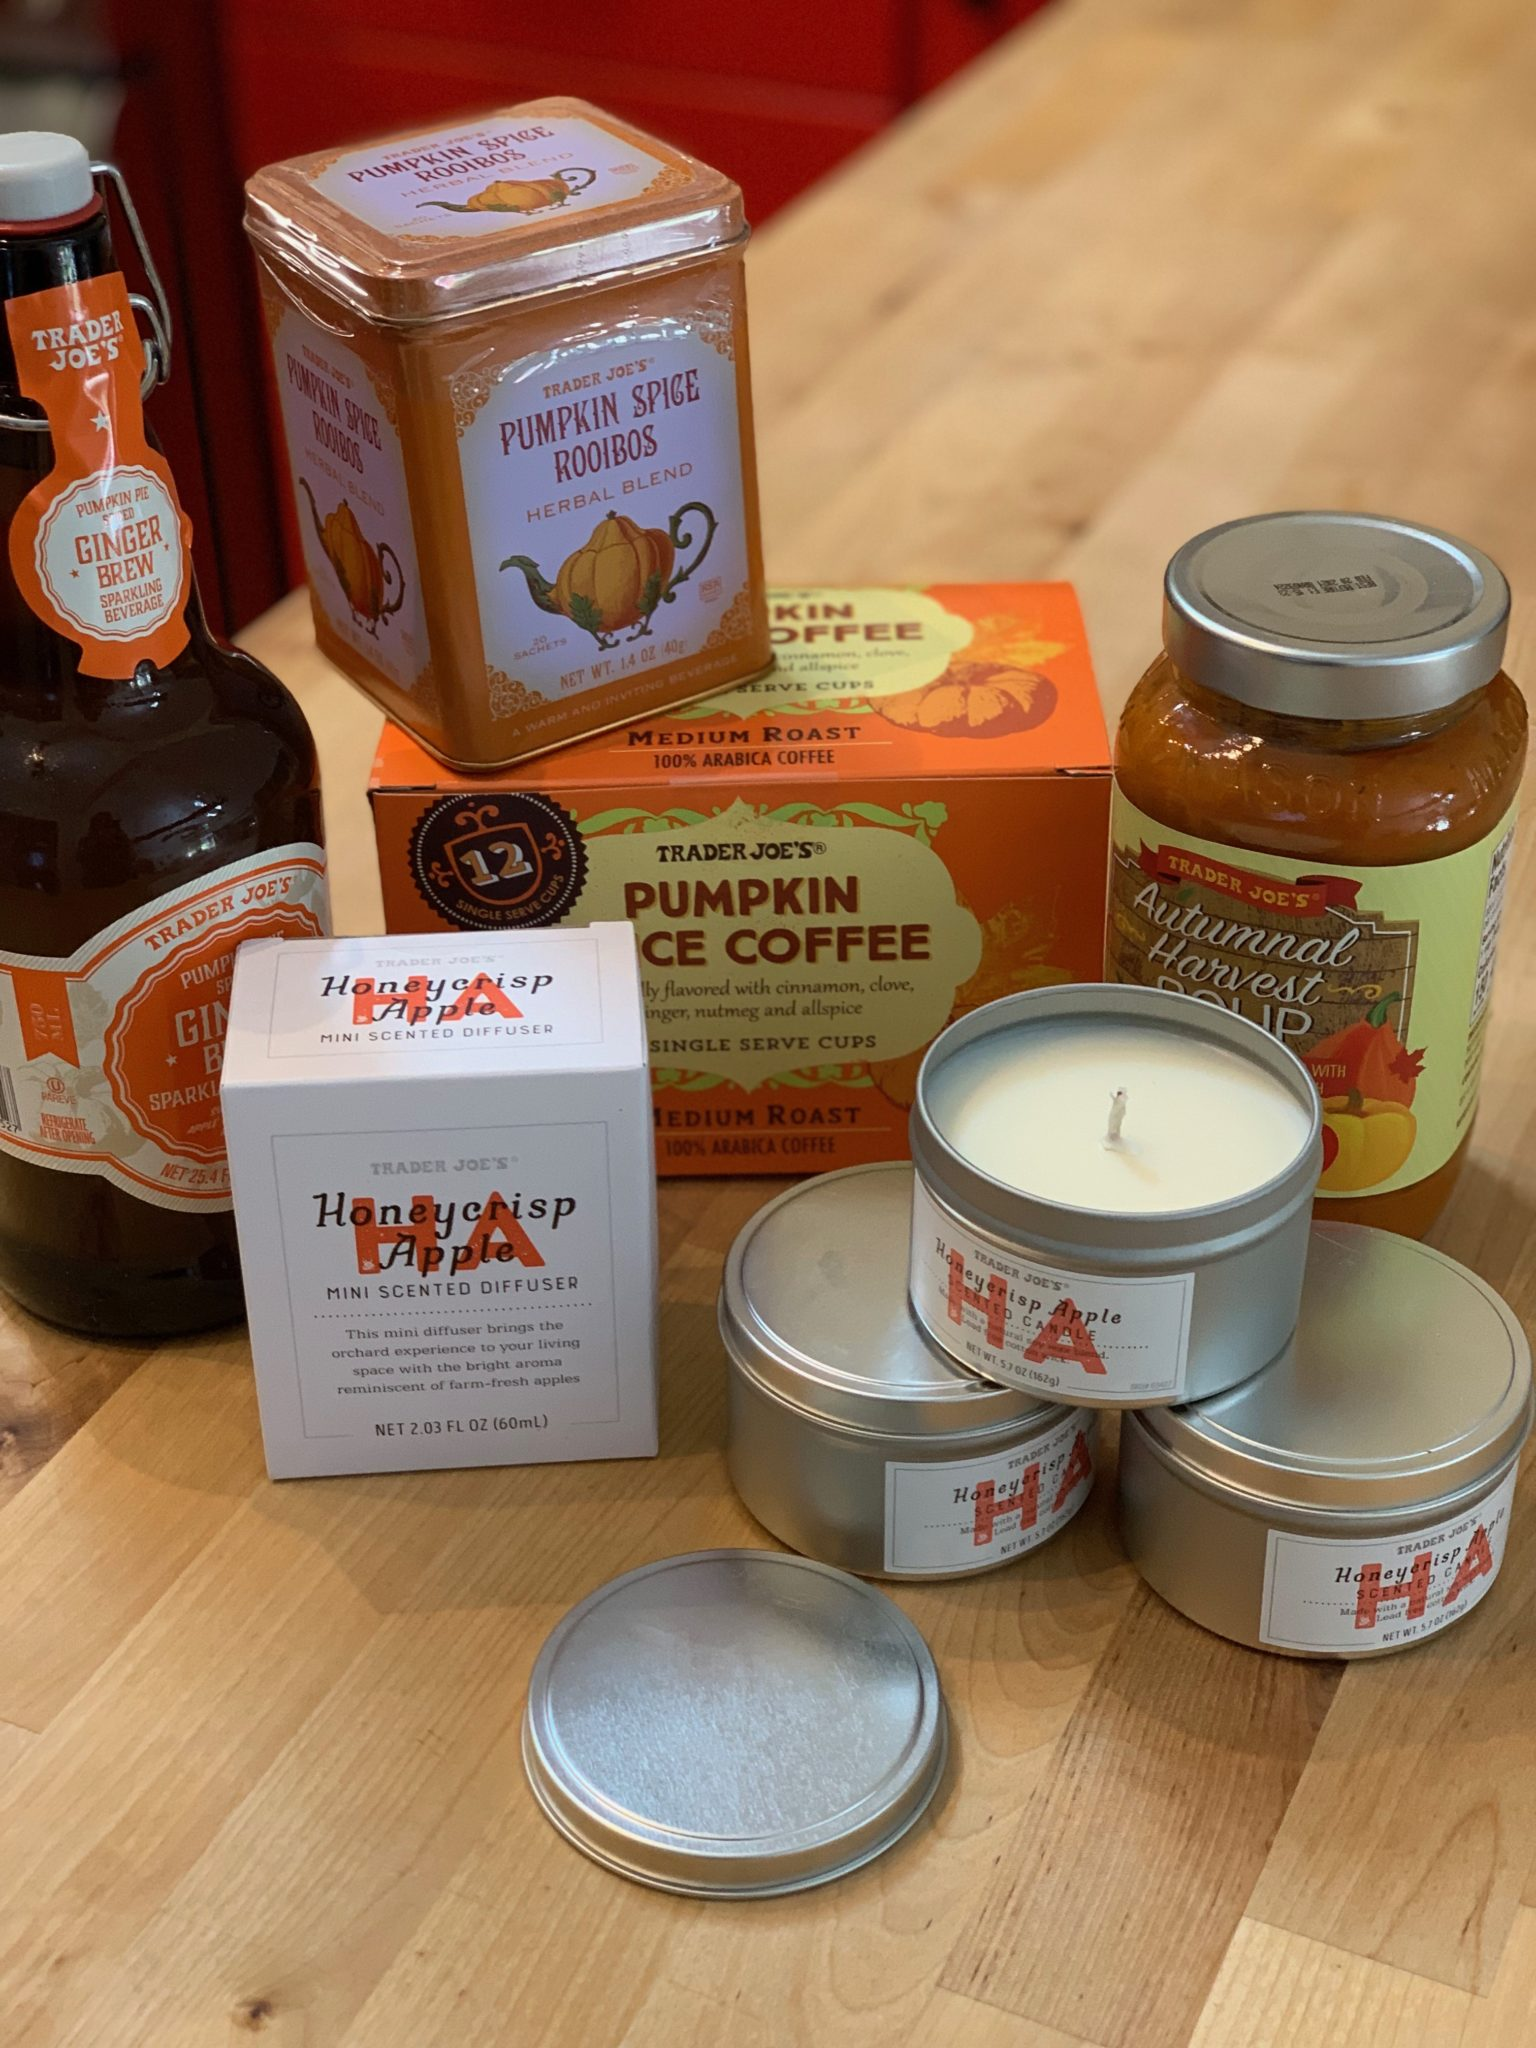 showing Fall items from Trader Joe's